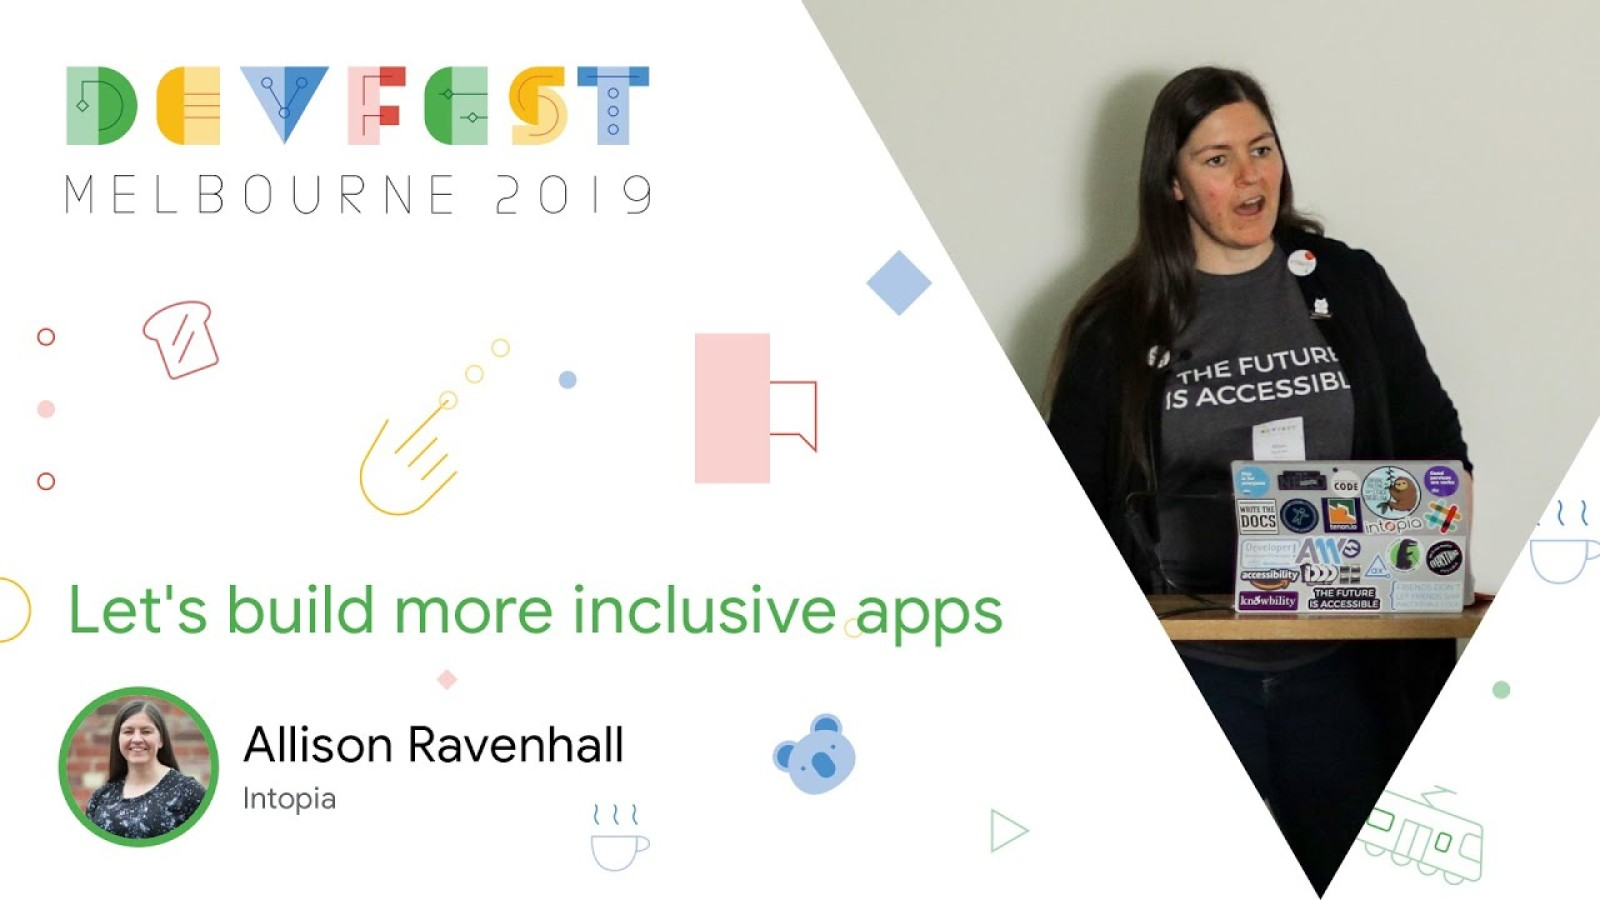 Let's make more inclusive apps